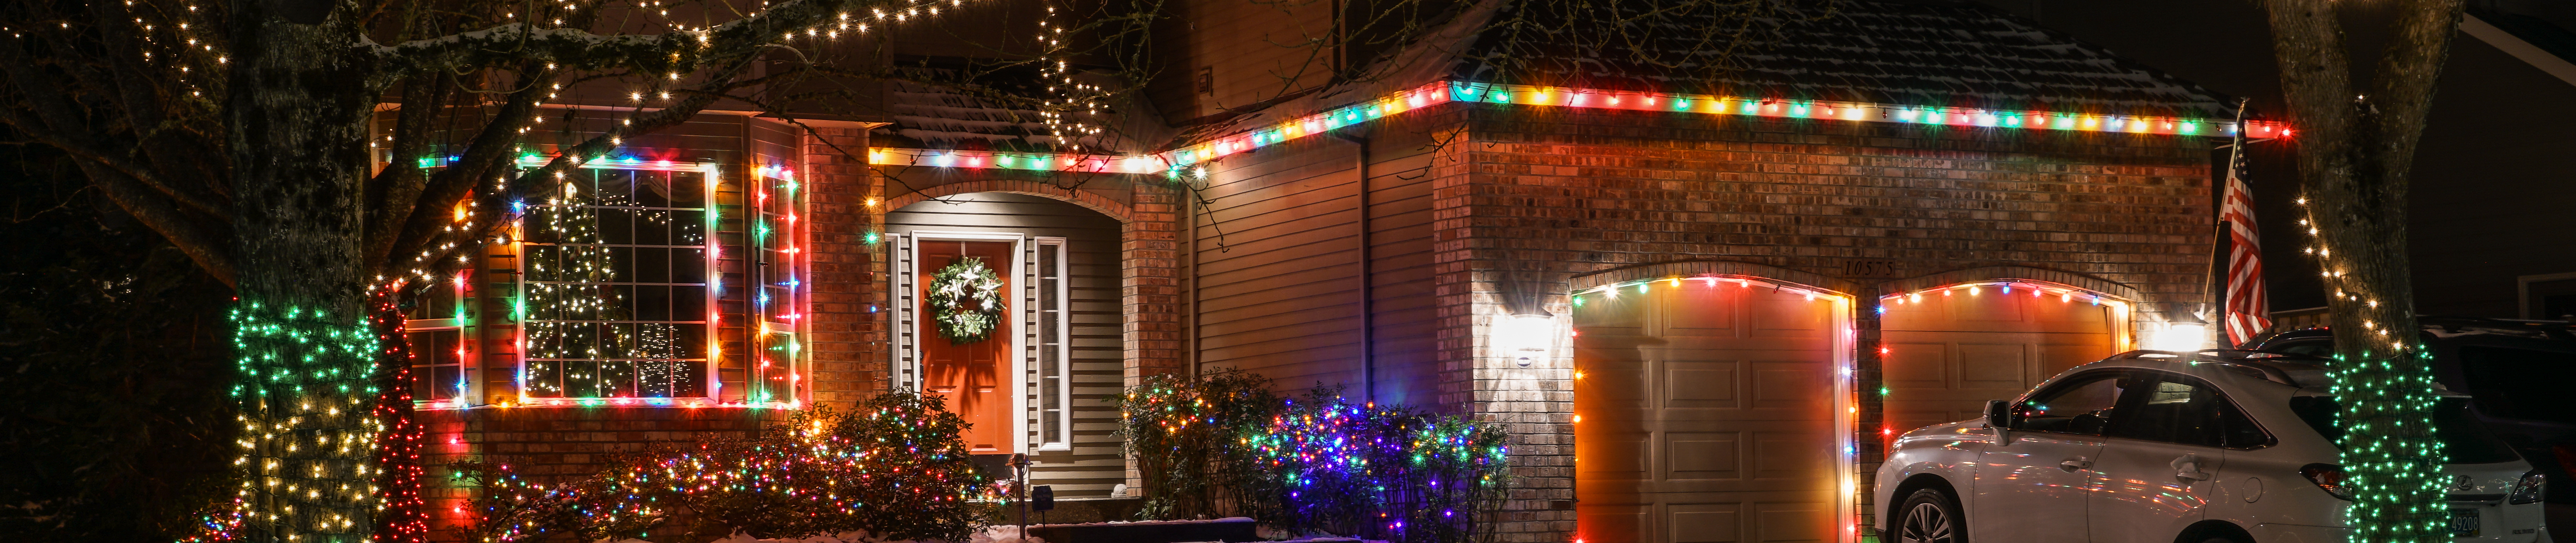 Christmas lights in the neighborhood - Banner Photo